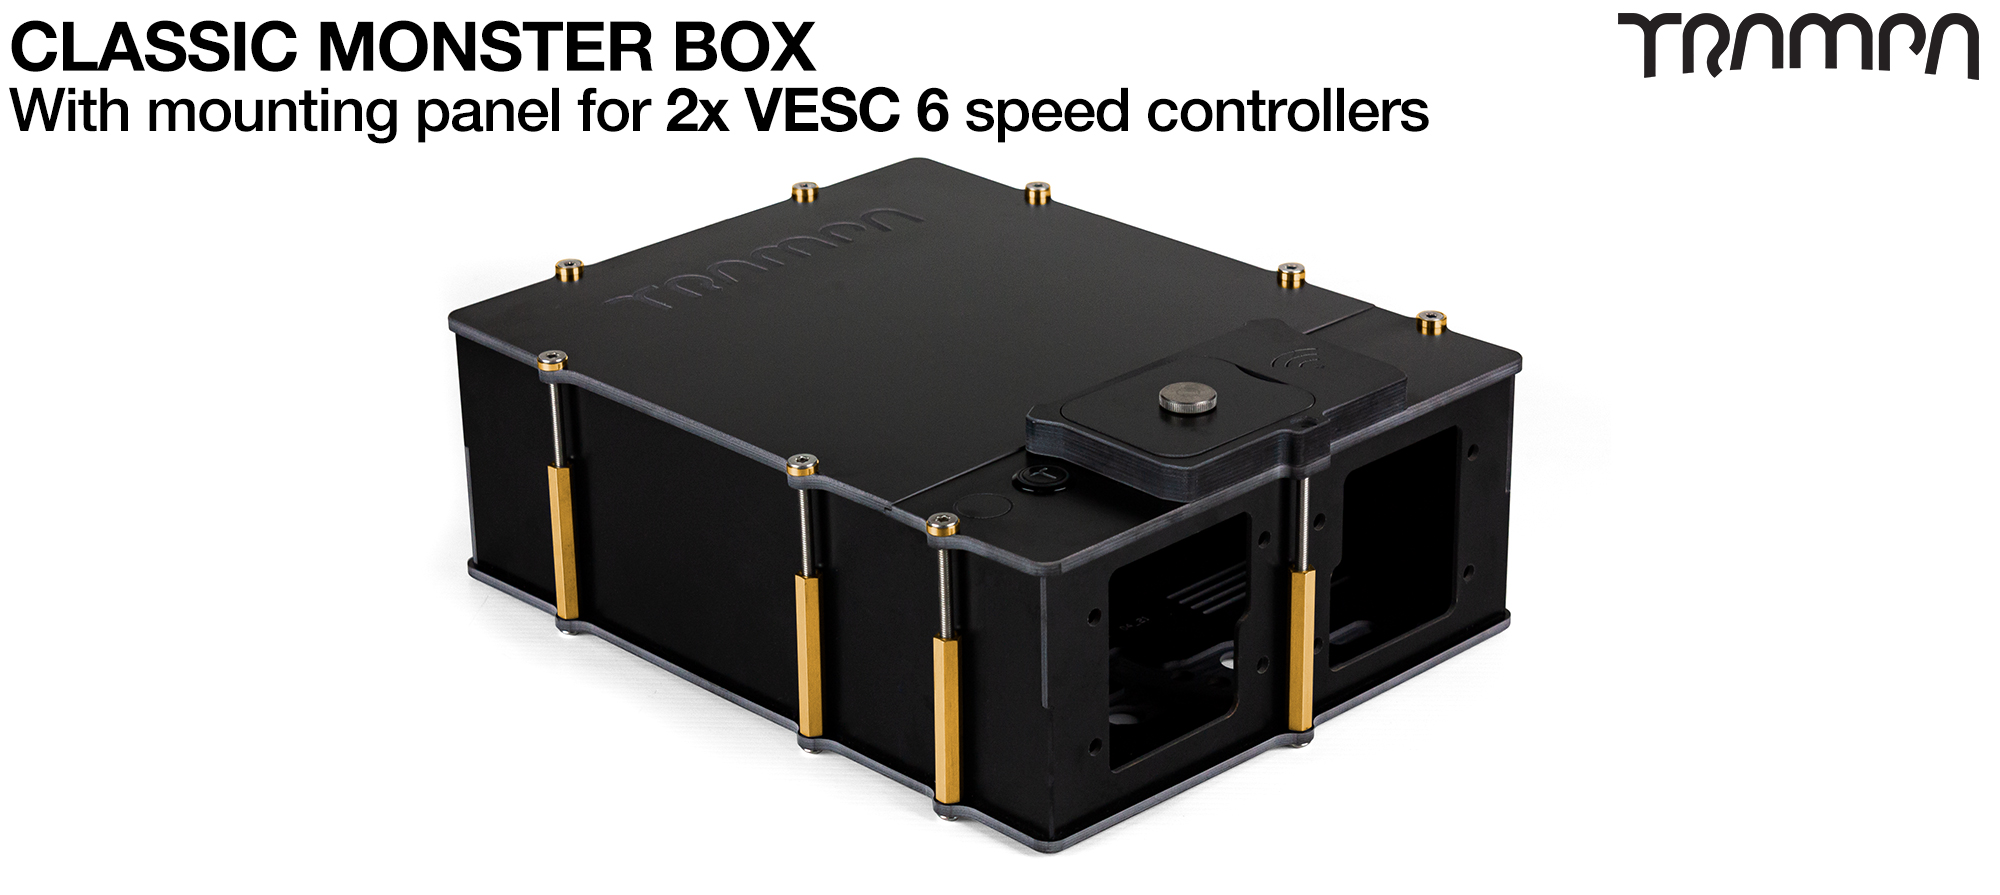 The MONSTER BOX MkIII fits 20A of cells & has space for 2x VESC 6 MkIII is Made specifically to work in conjunction with TRAMPA's Electric 9-69 Deck